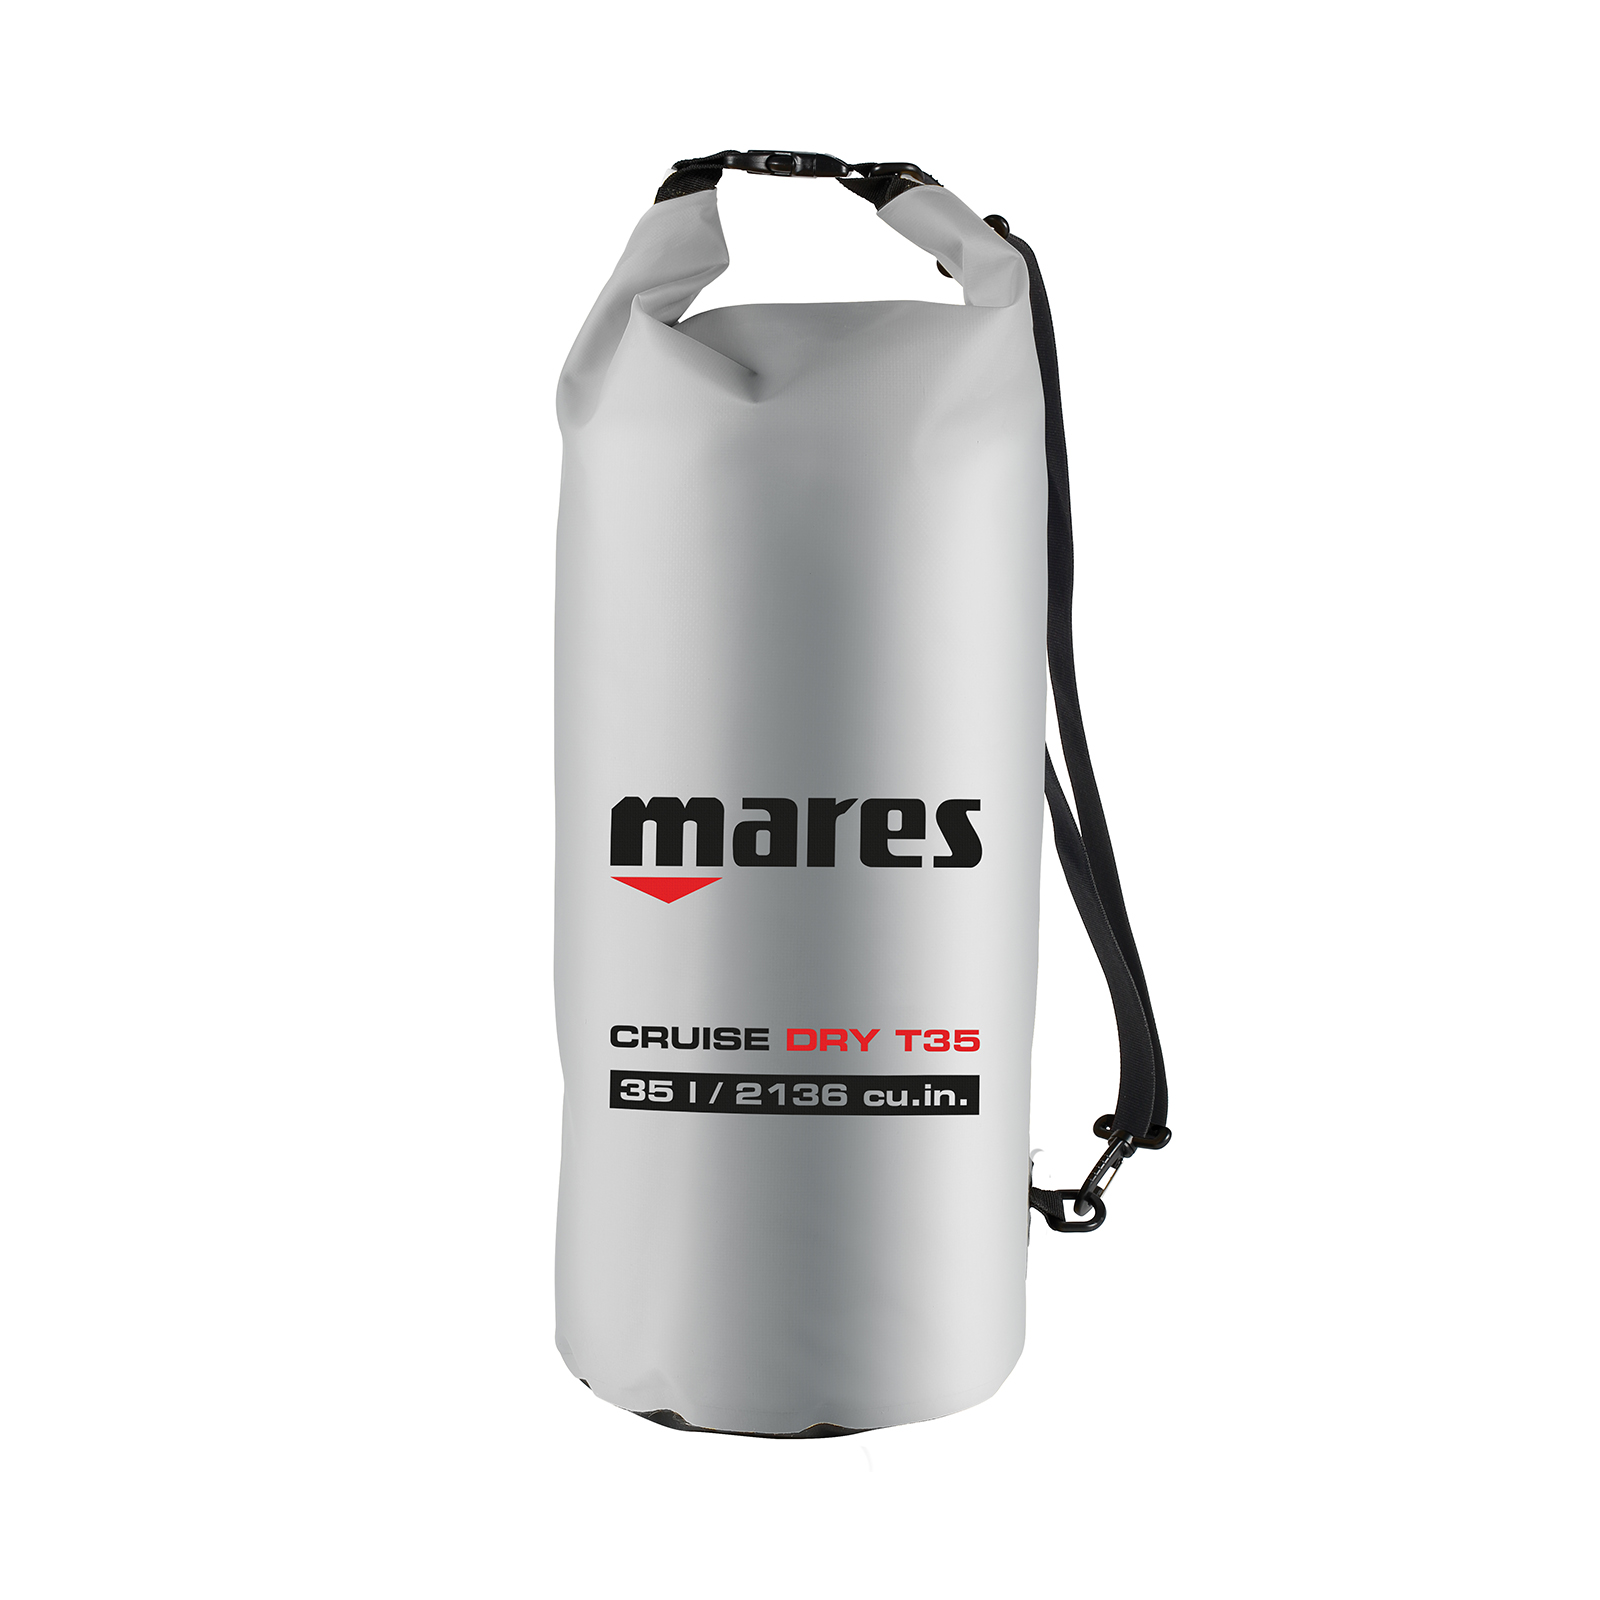 MARES - Cruise Drybag T35 Trockensack